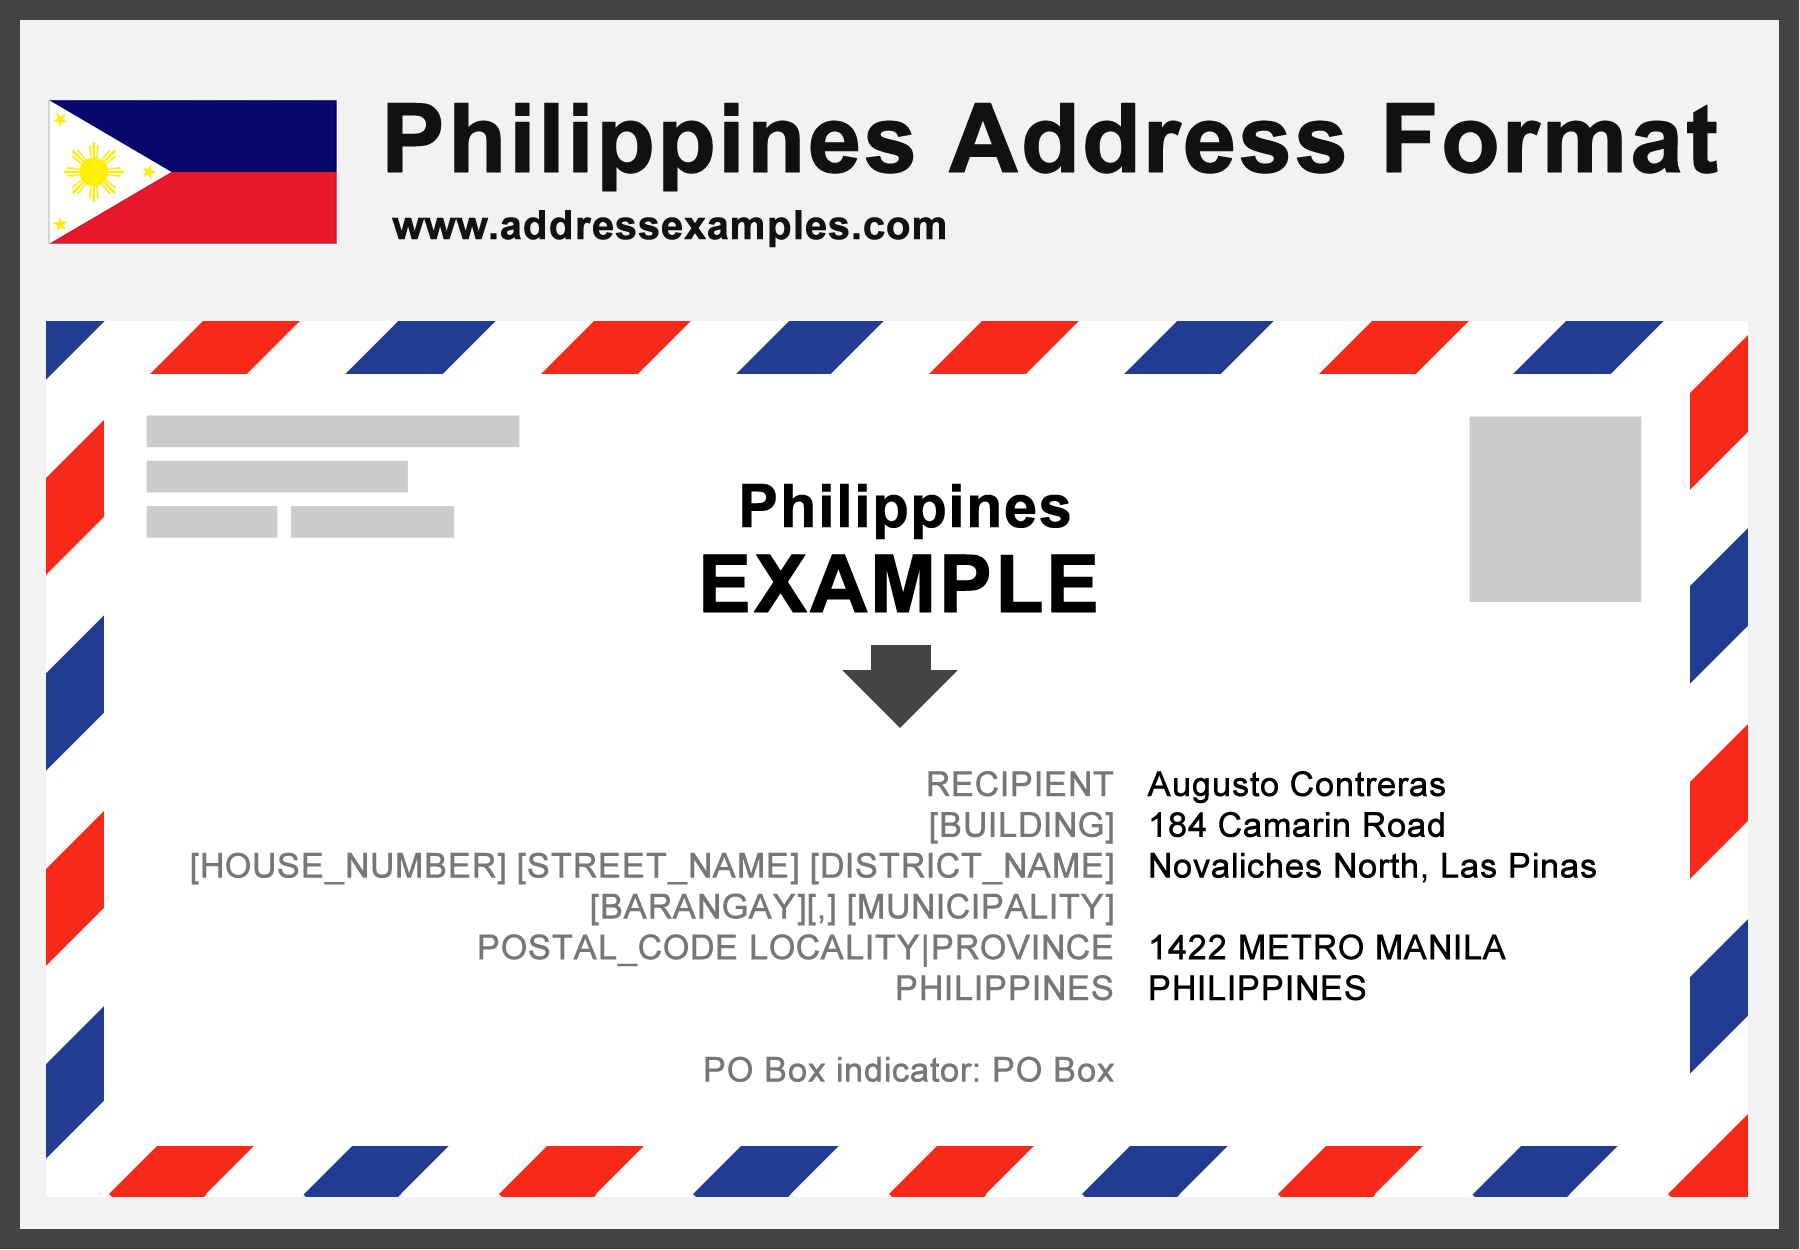 Philippines Address Format Addressexamples Com